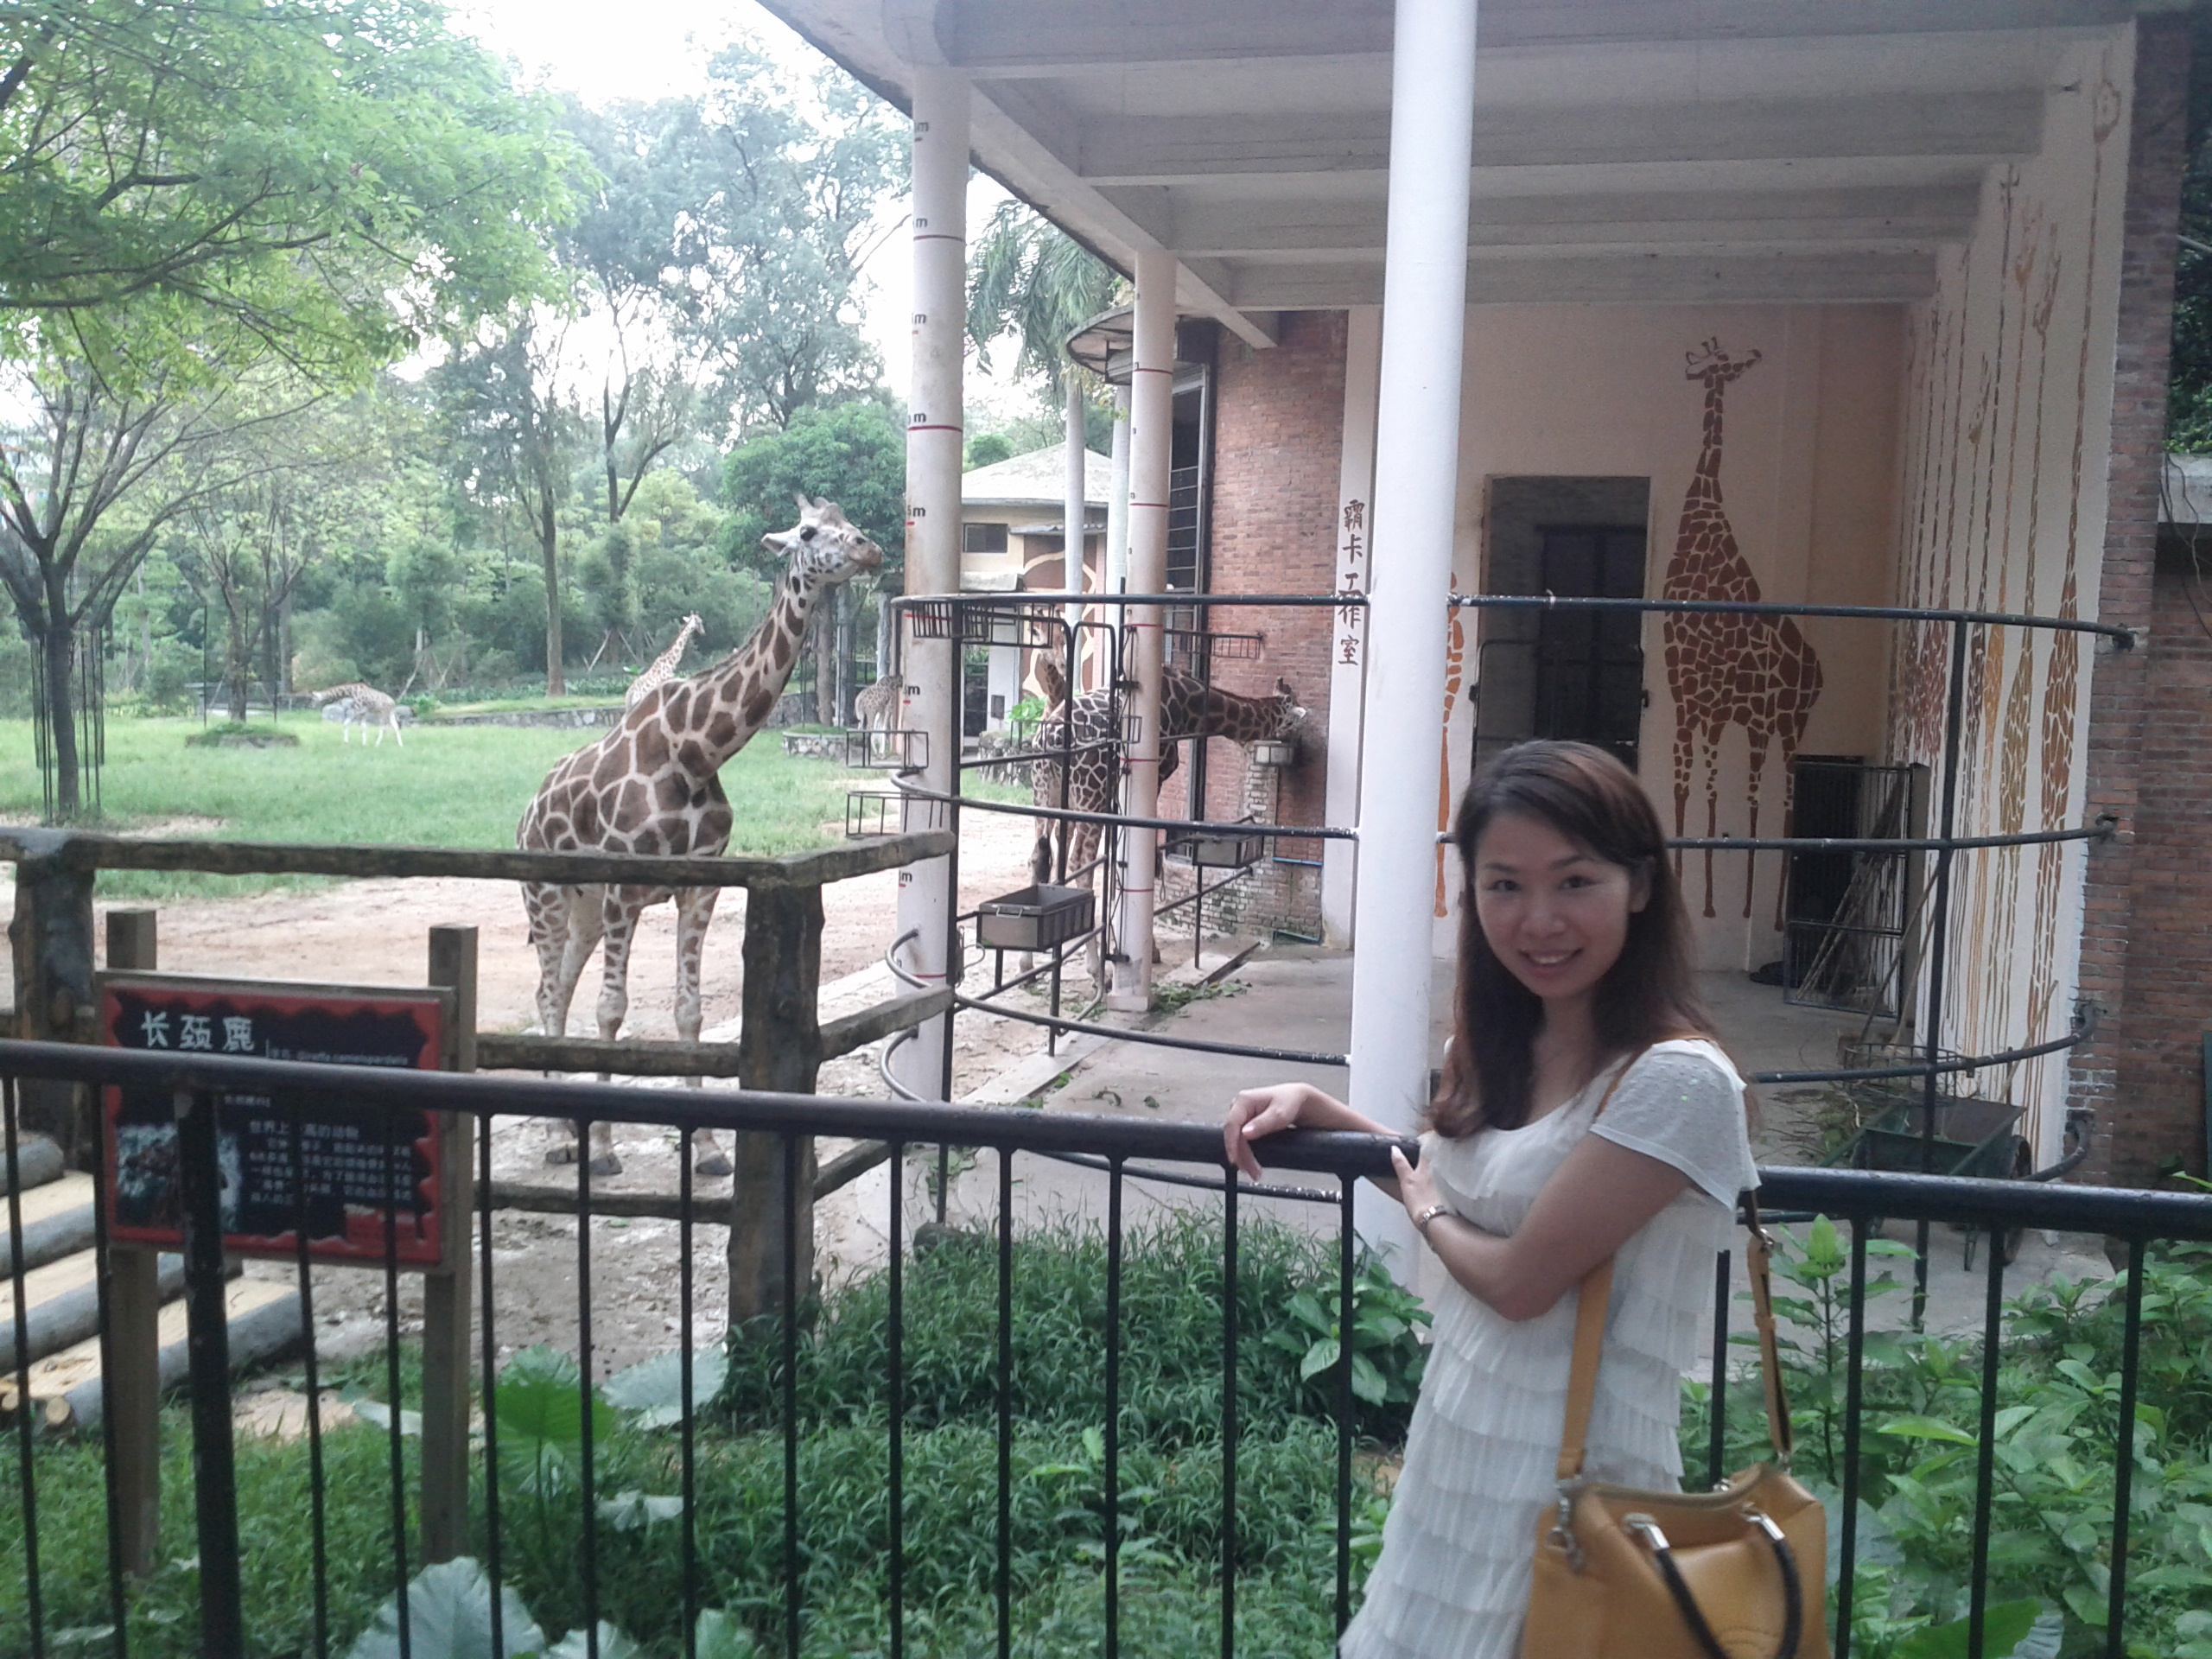 Yoyo and Giraffes at Guangzhou zoo